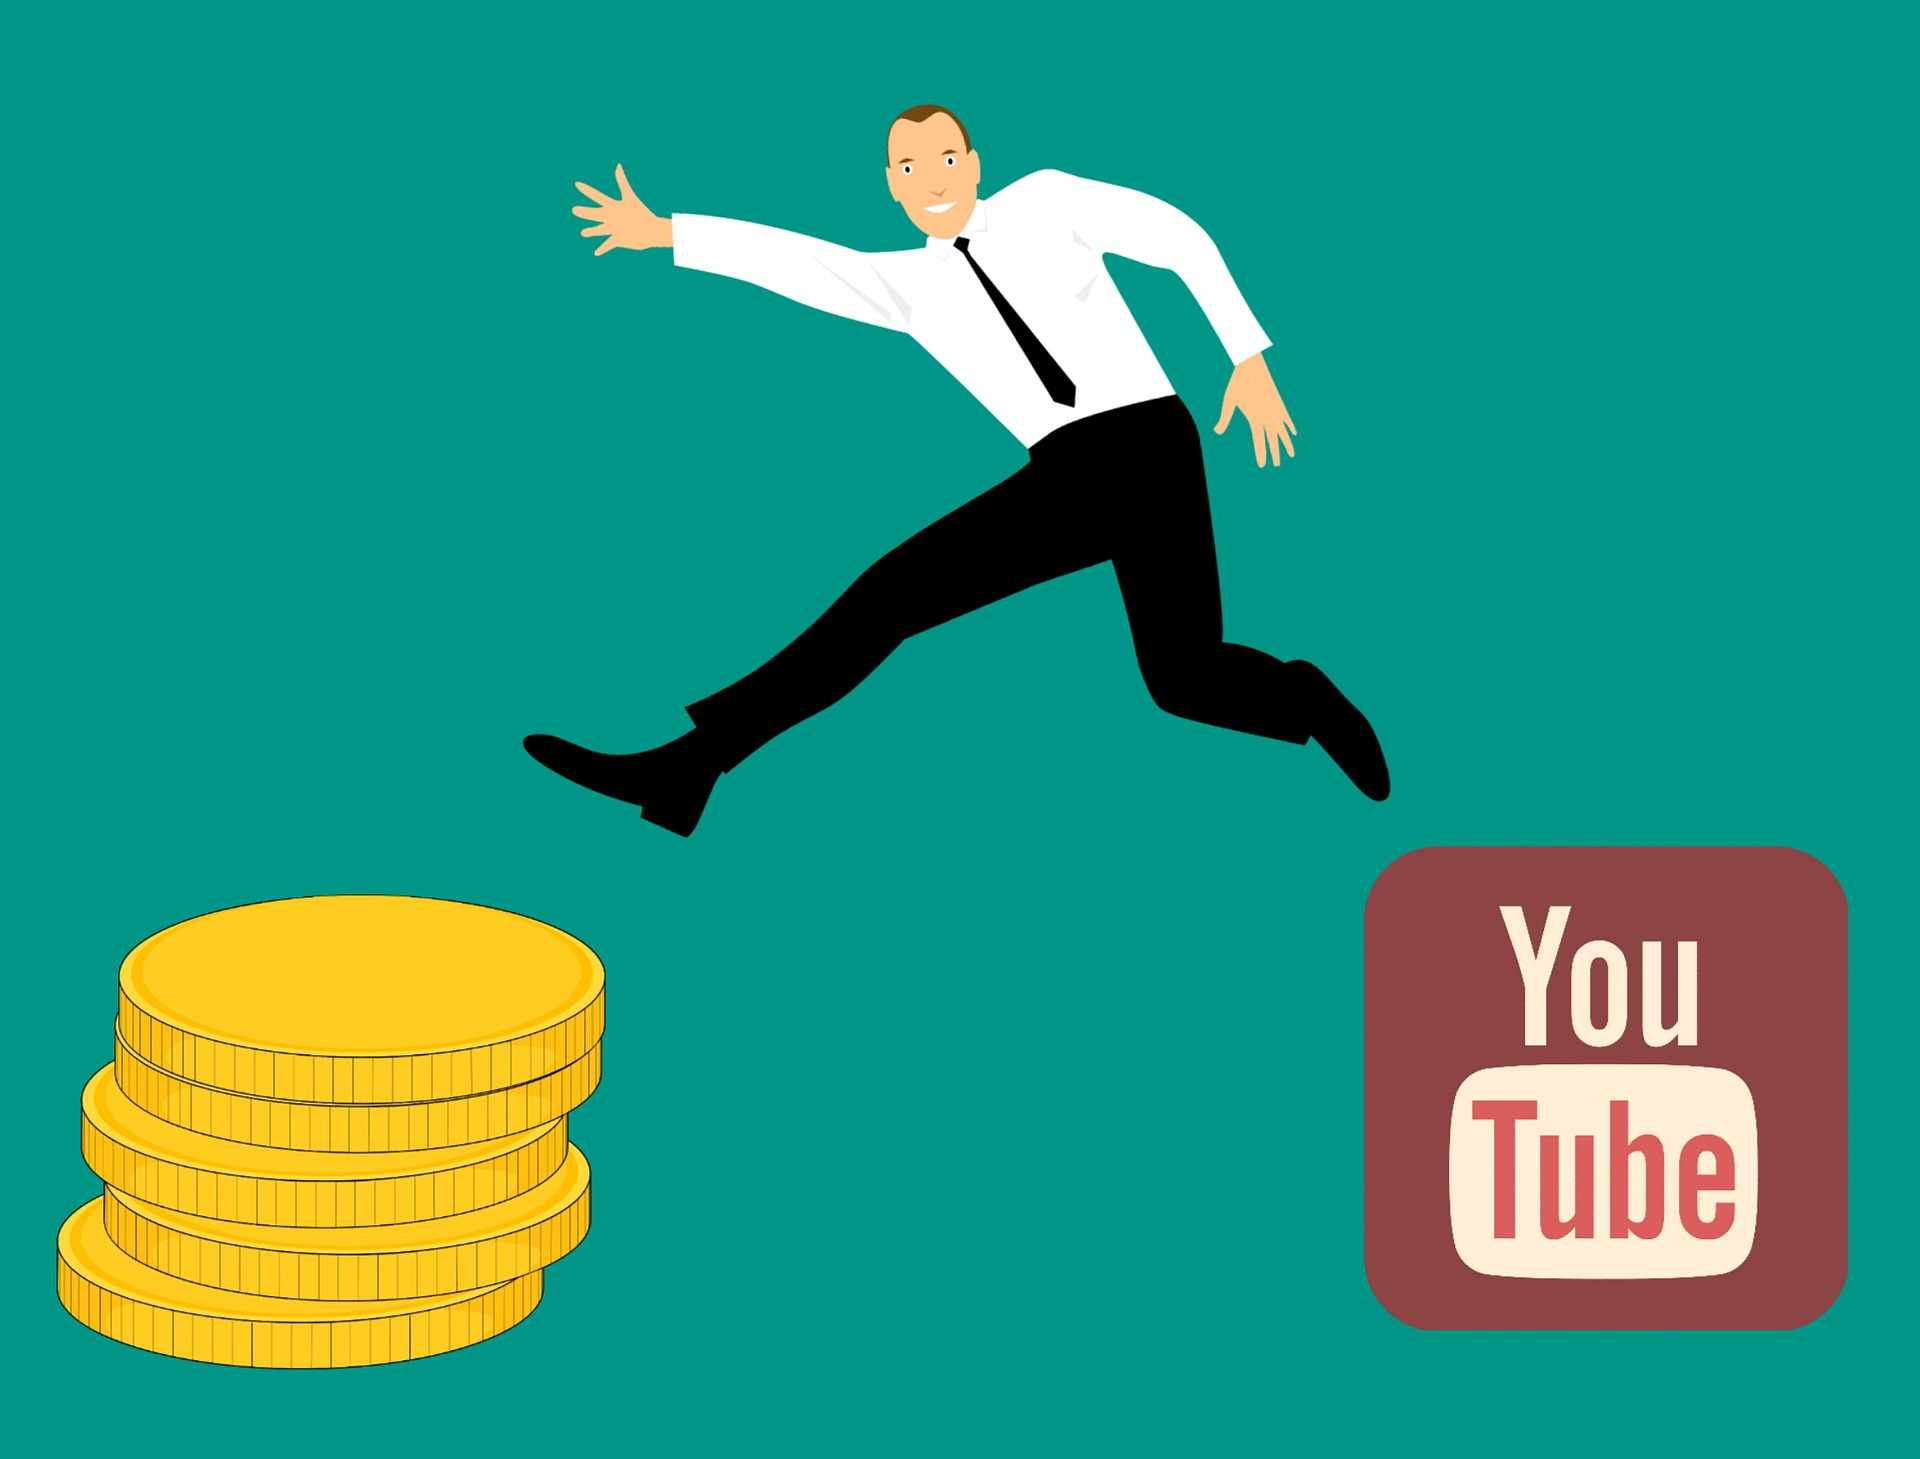 YouTube monetization strategies in South Africa